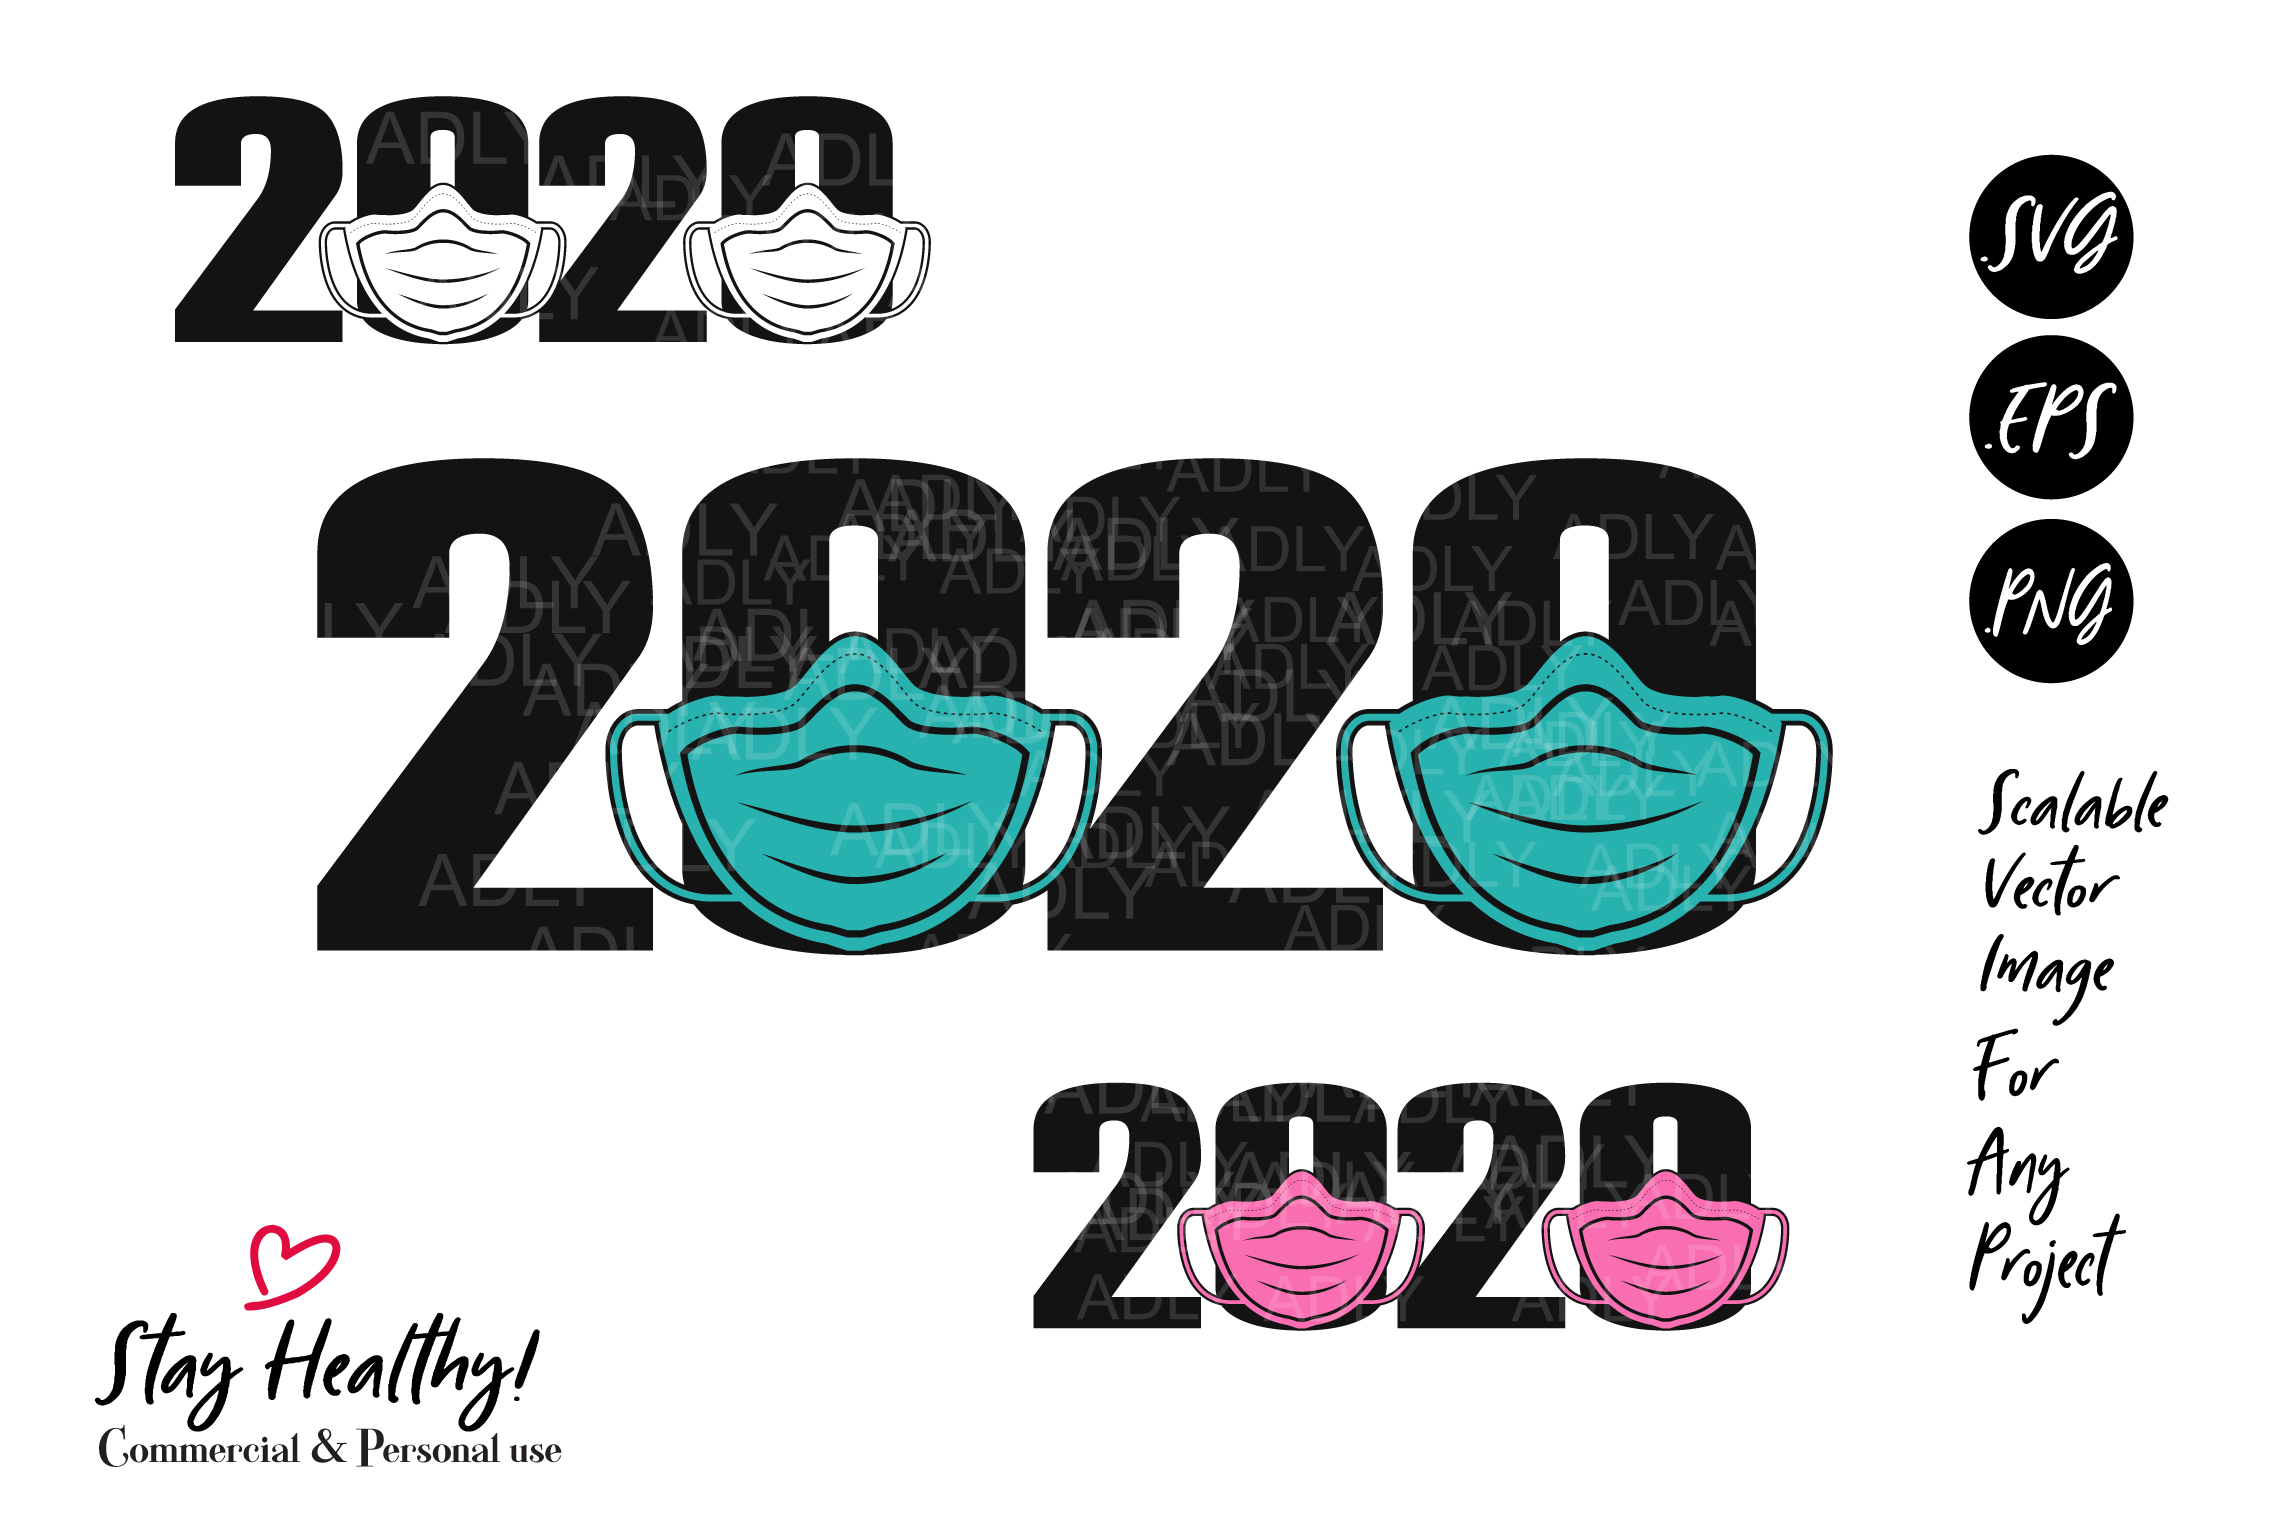 Face Mask 2020 Virus Design Sublimation Graphic By Adlydigital